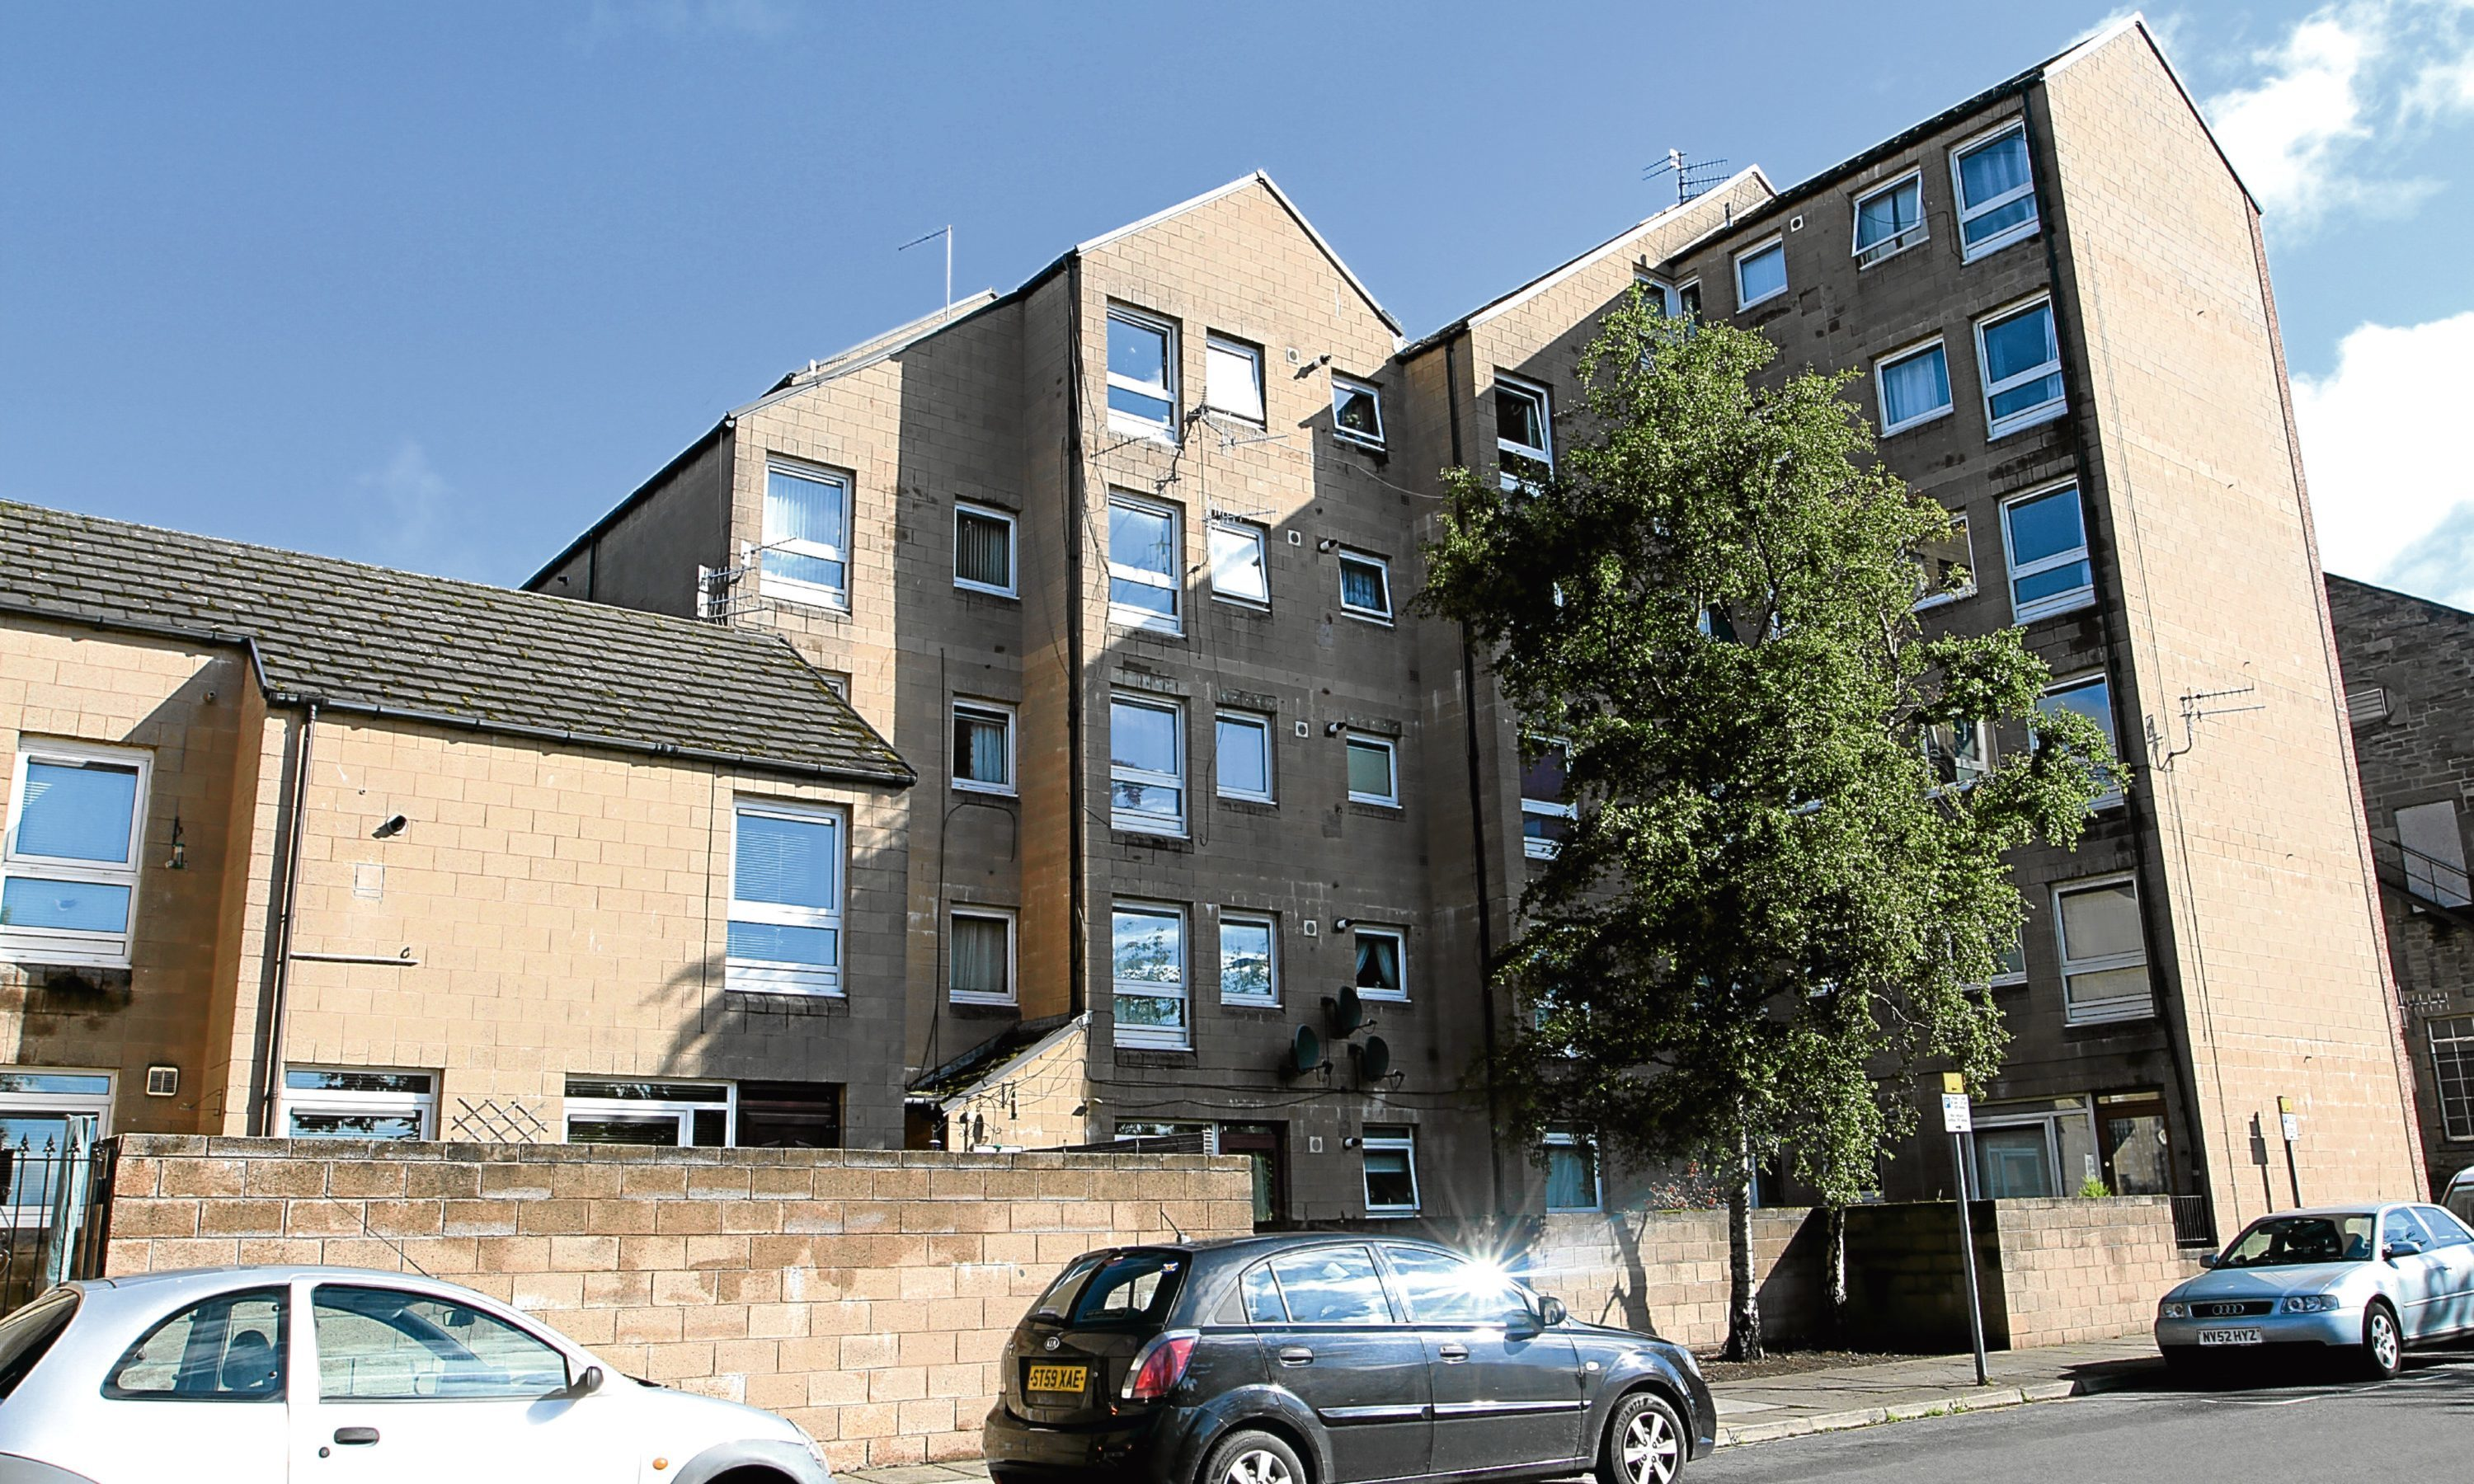 The sheltered housing complex on Craigie Street.